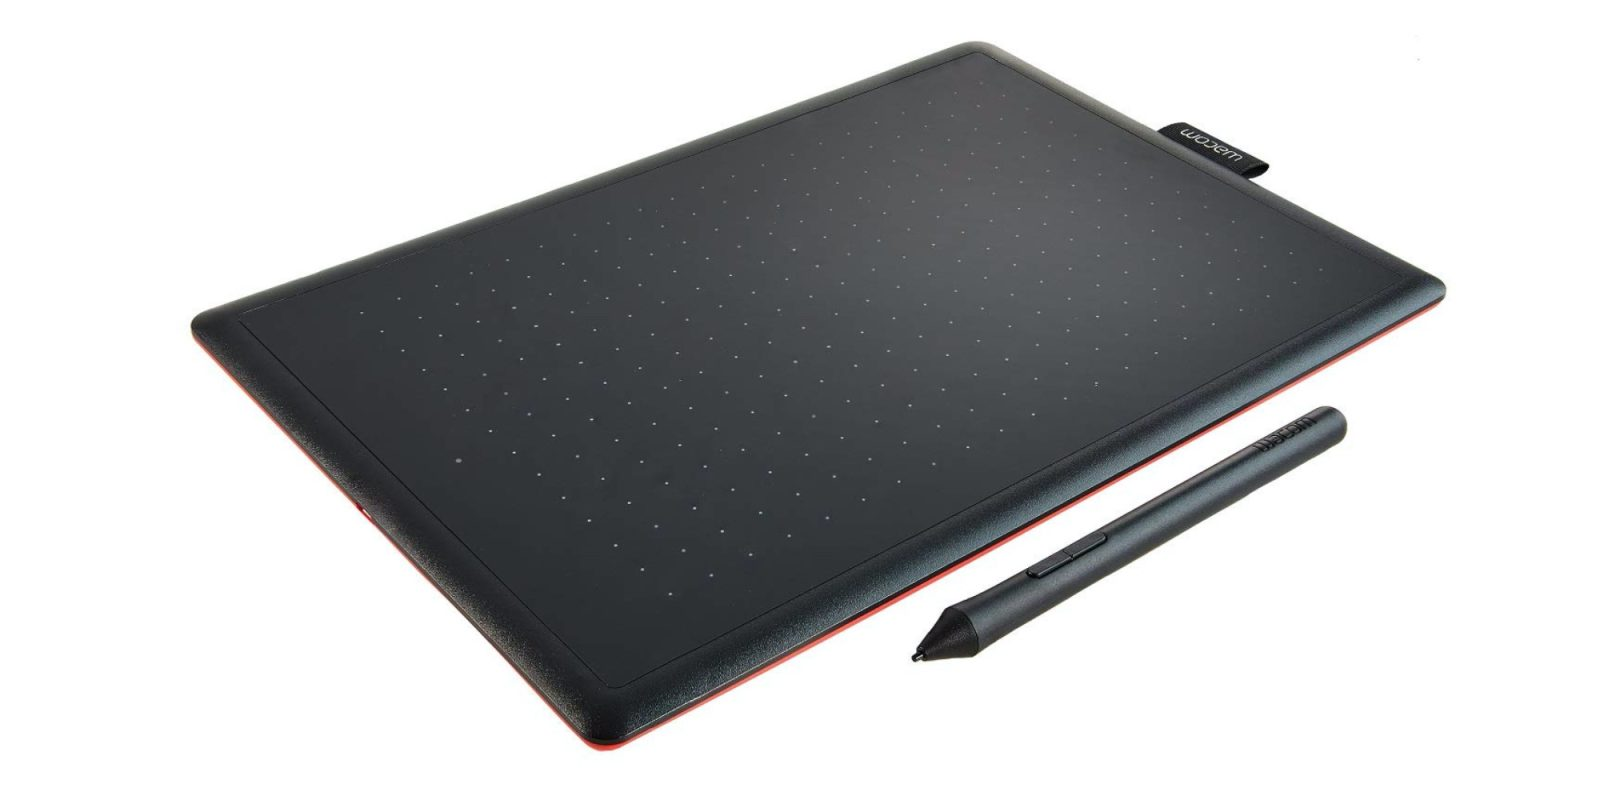 Wacom One drawing tablet is a must-have for digital artists at $99 (Reg. $130)